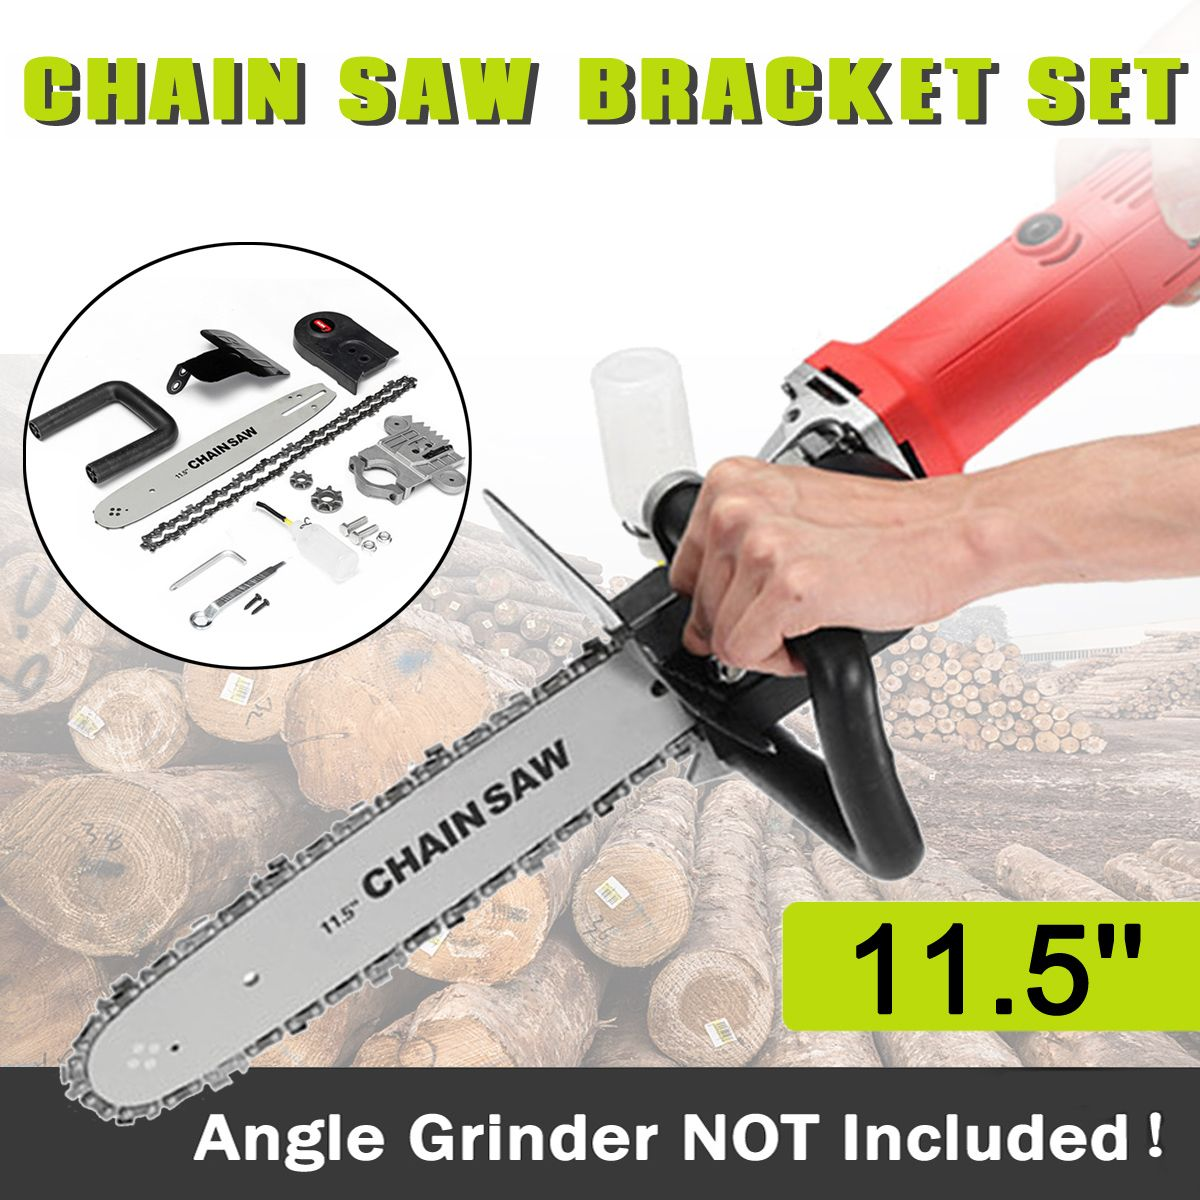 Electric saws Upgrade 11.5 Inch Chainsaw Bracket Changed 100 125 150 Angle Grinder Into Chain Saw Woodworking Tool